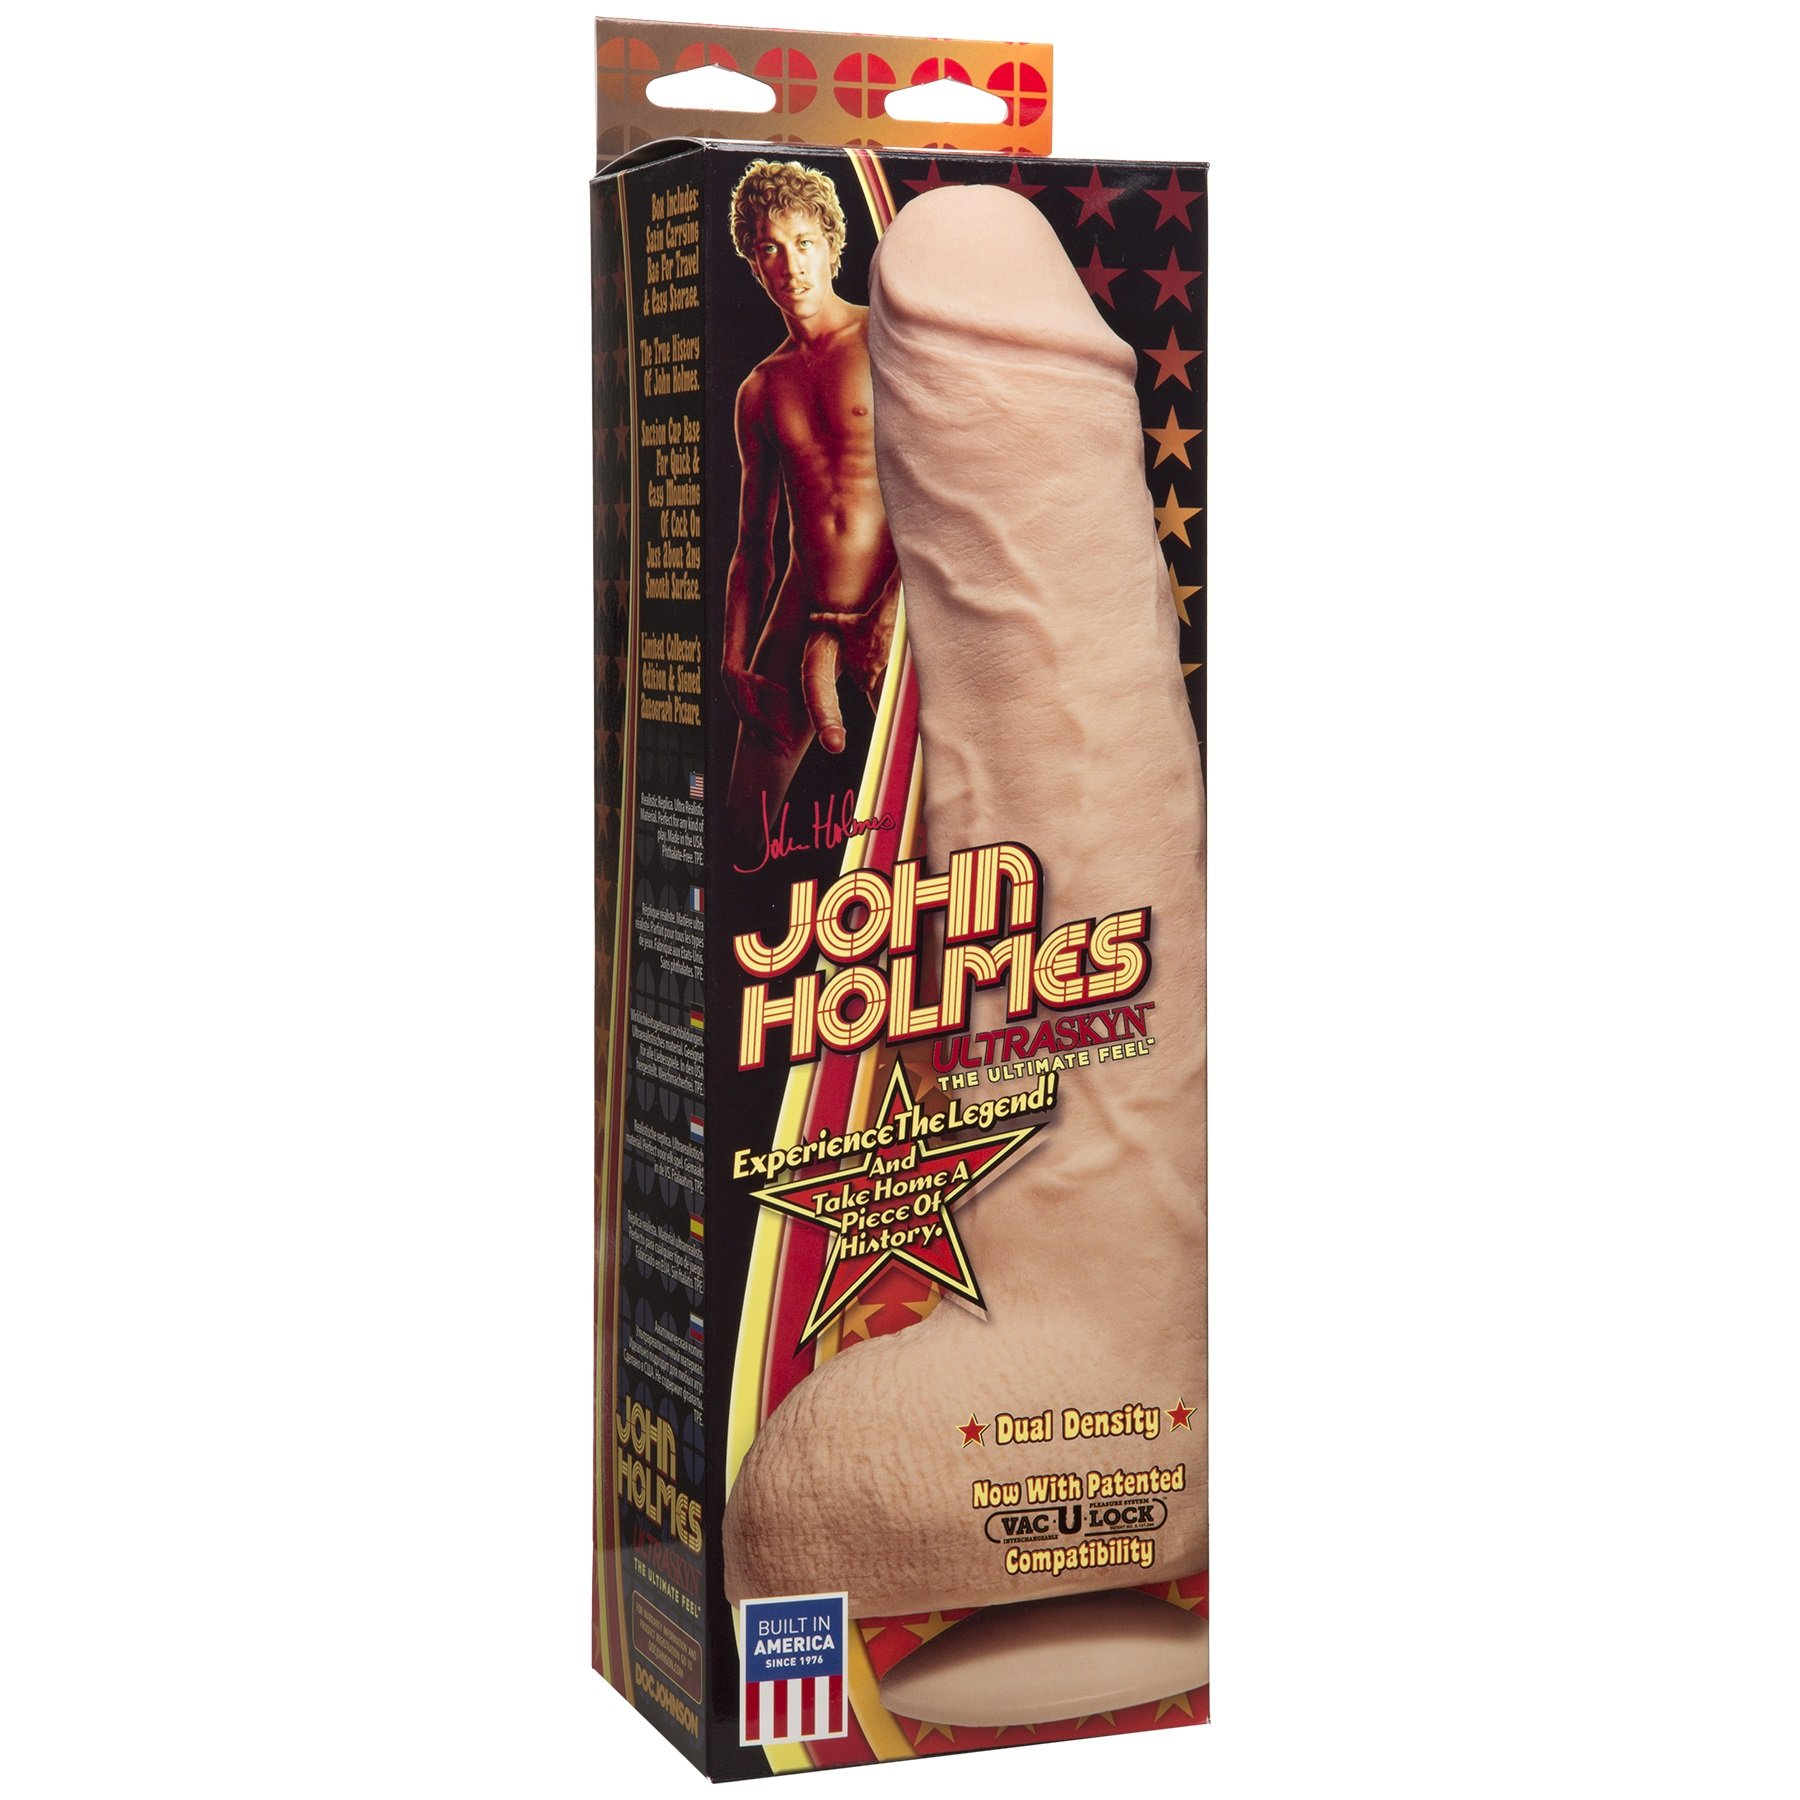 Doc Johnson The Legendary John Holmes - 12 Inch ULTRASKYN Dildo with Removeable Vac-U-Lock Suction Cup Base - 10 inches of Insertable Length - Harness Compatible - Storage Bag Included by Doc Johnson (Image #5)